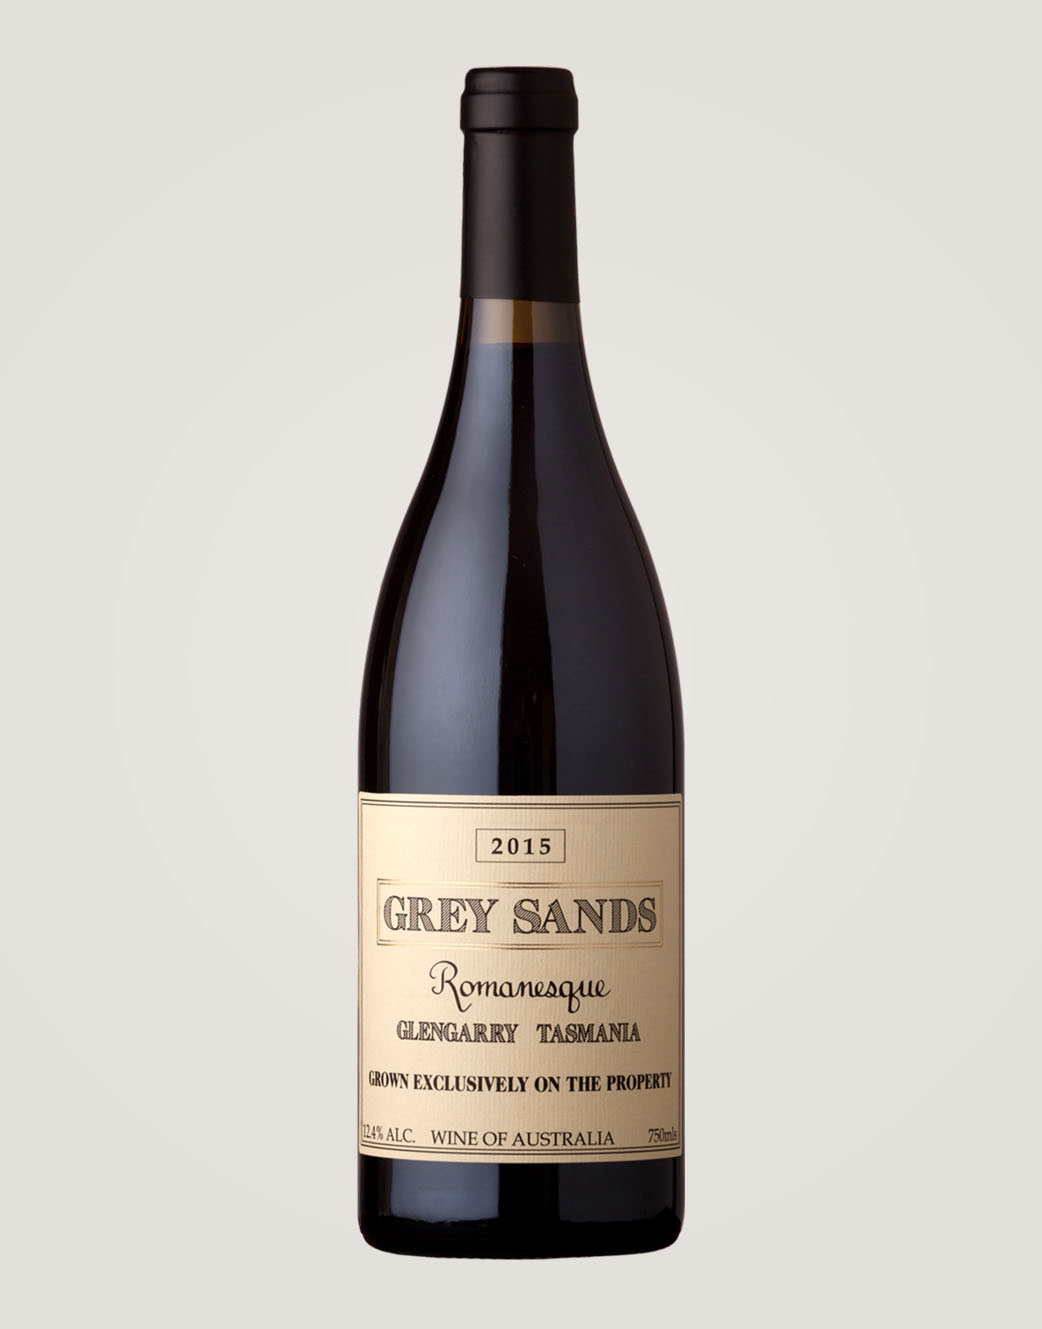 Grey Sands Romanesque 2015 bottle